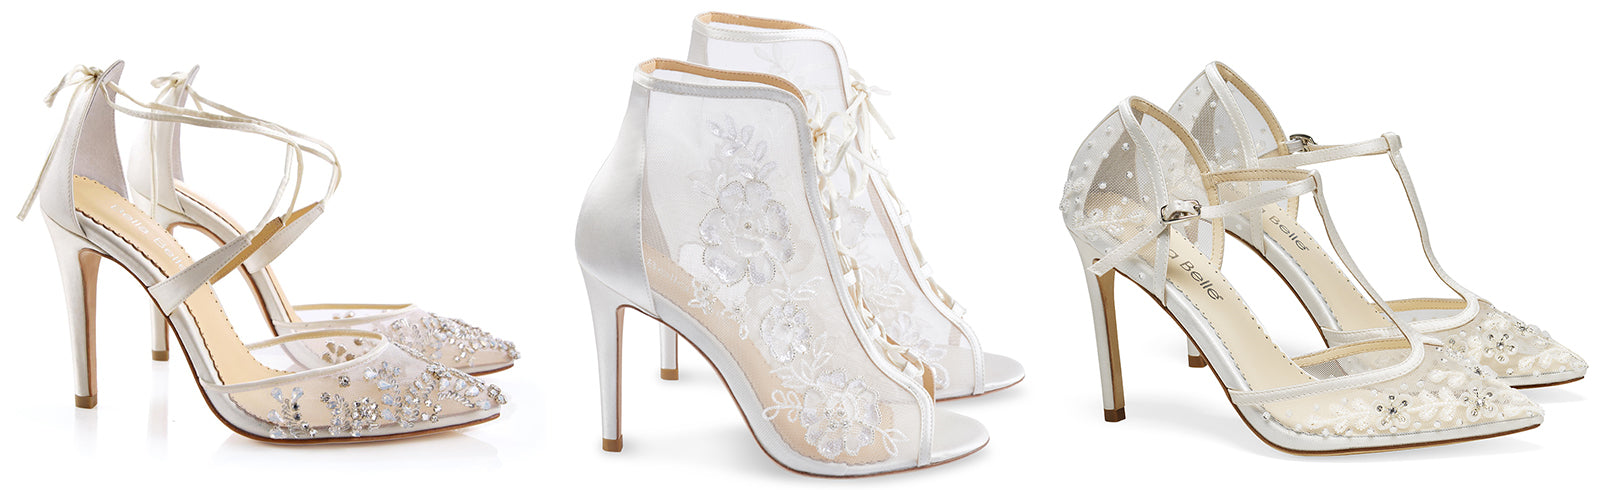 bella belle real brides pnina tornai wedding dress designer wedding shoes